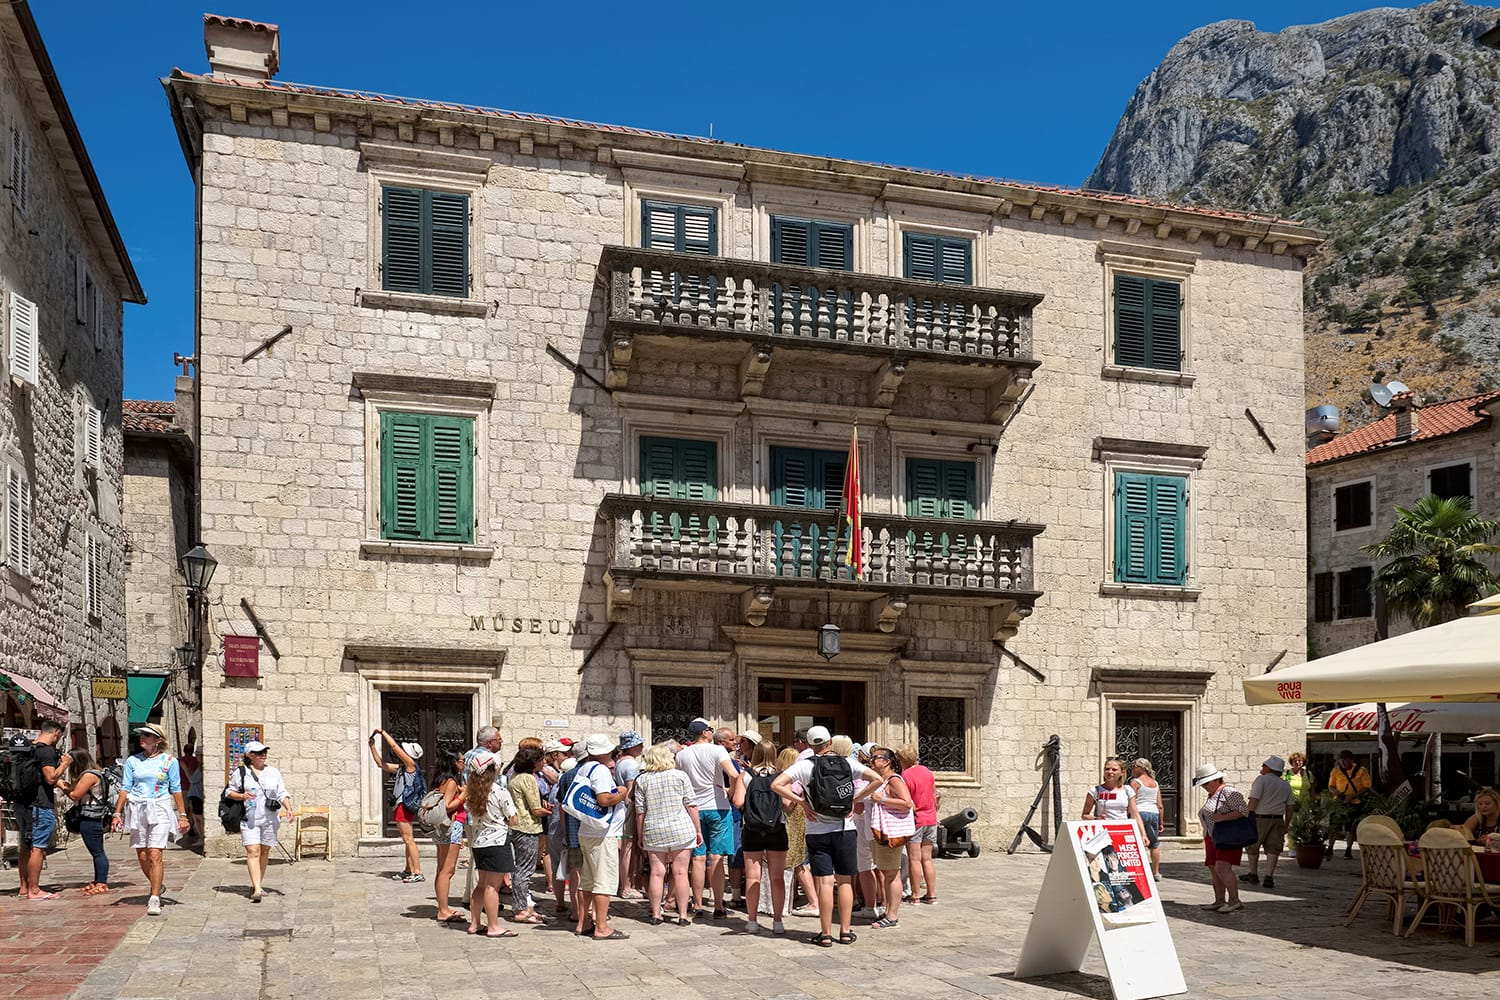 Tourists near the Maritime Museum located in the Grgurina Palace, Kotor, Montenegro